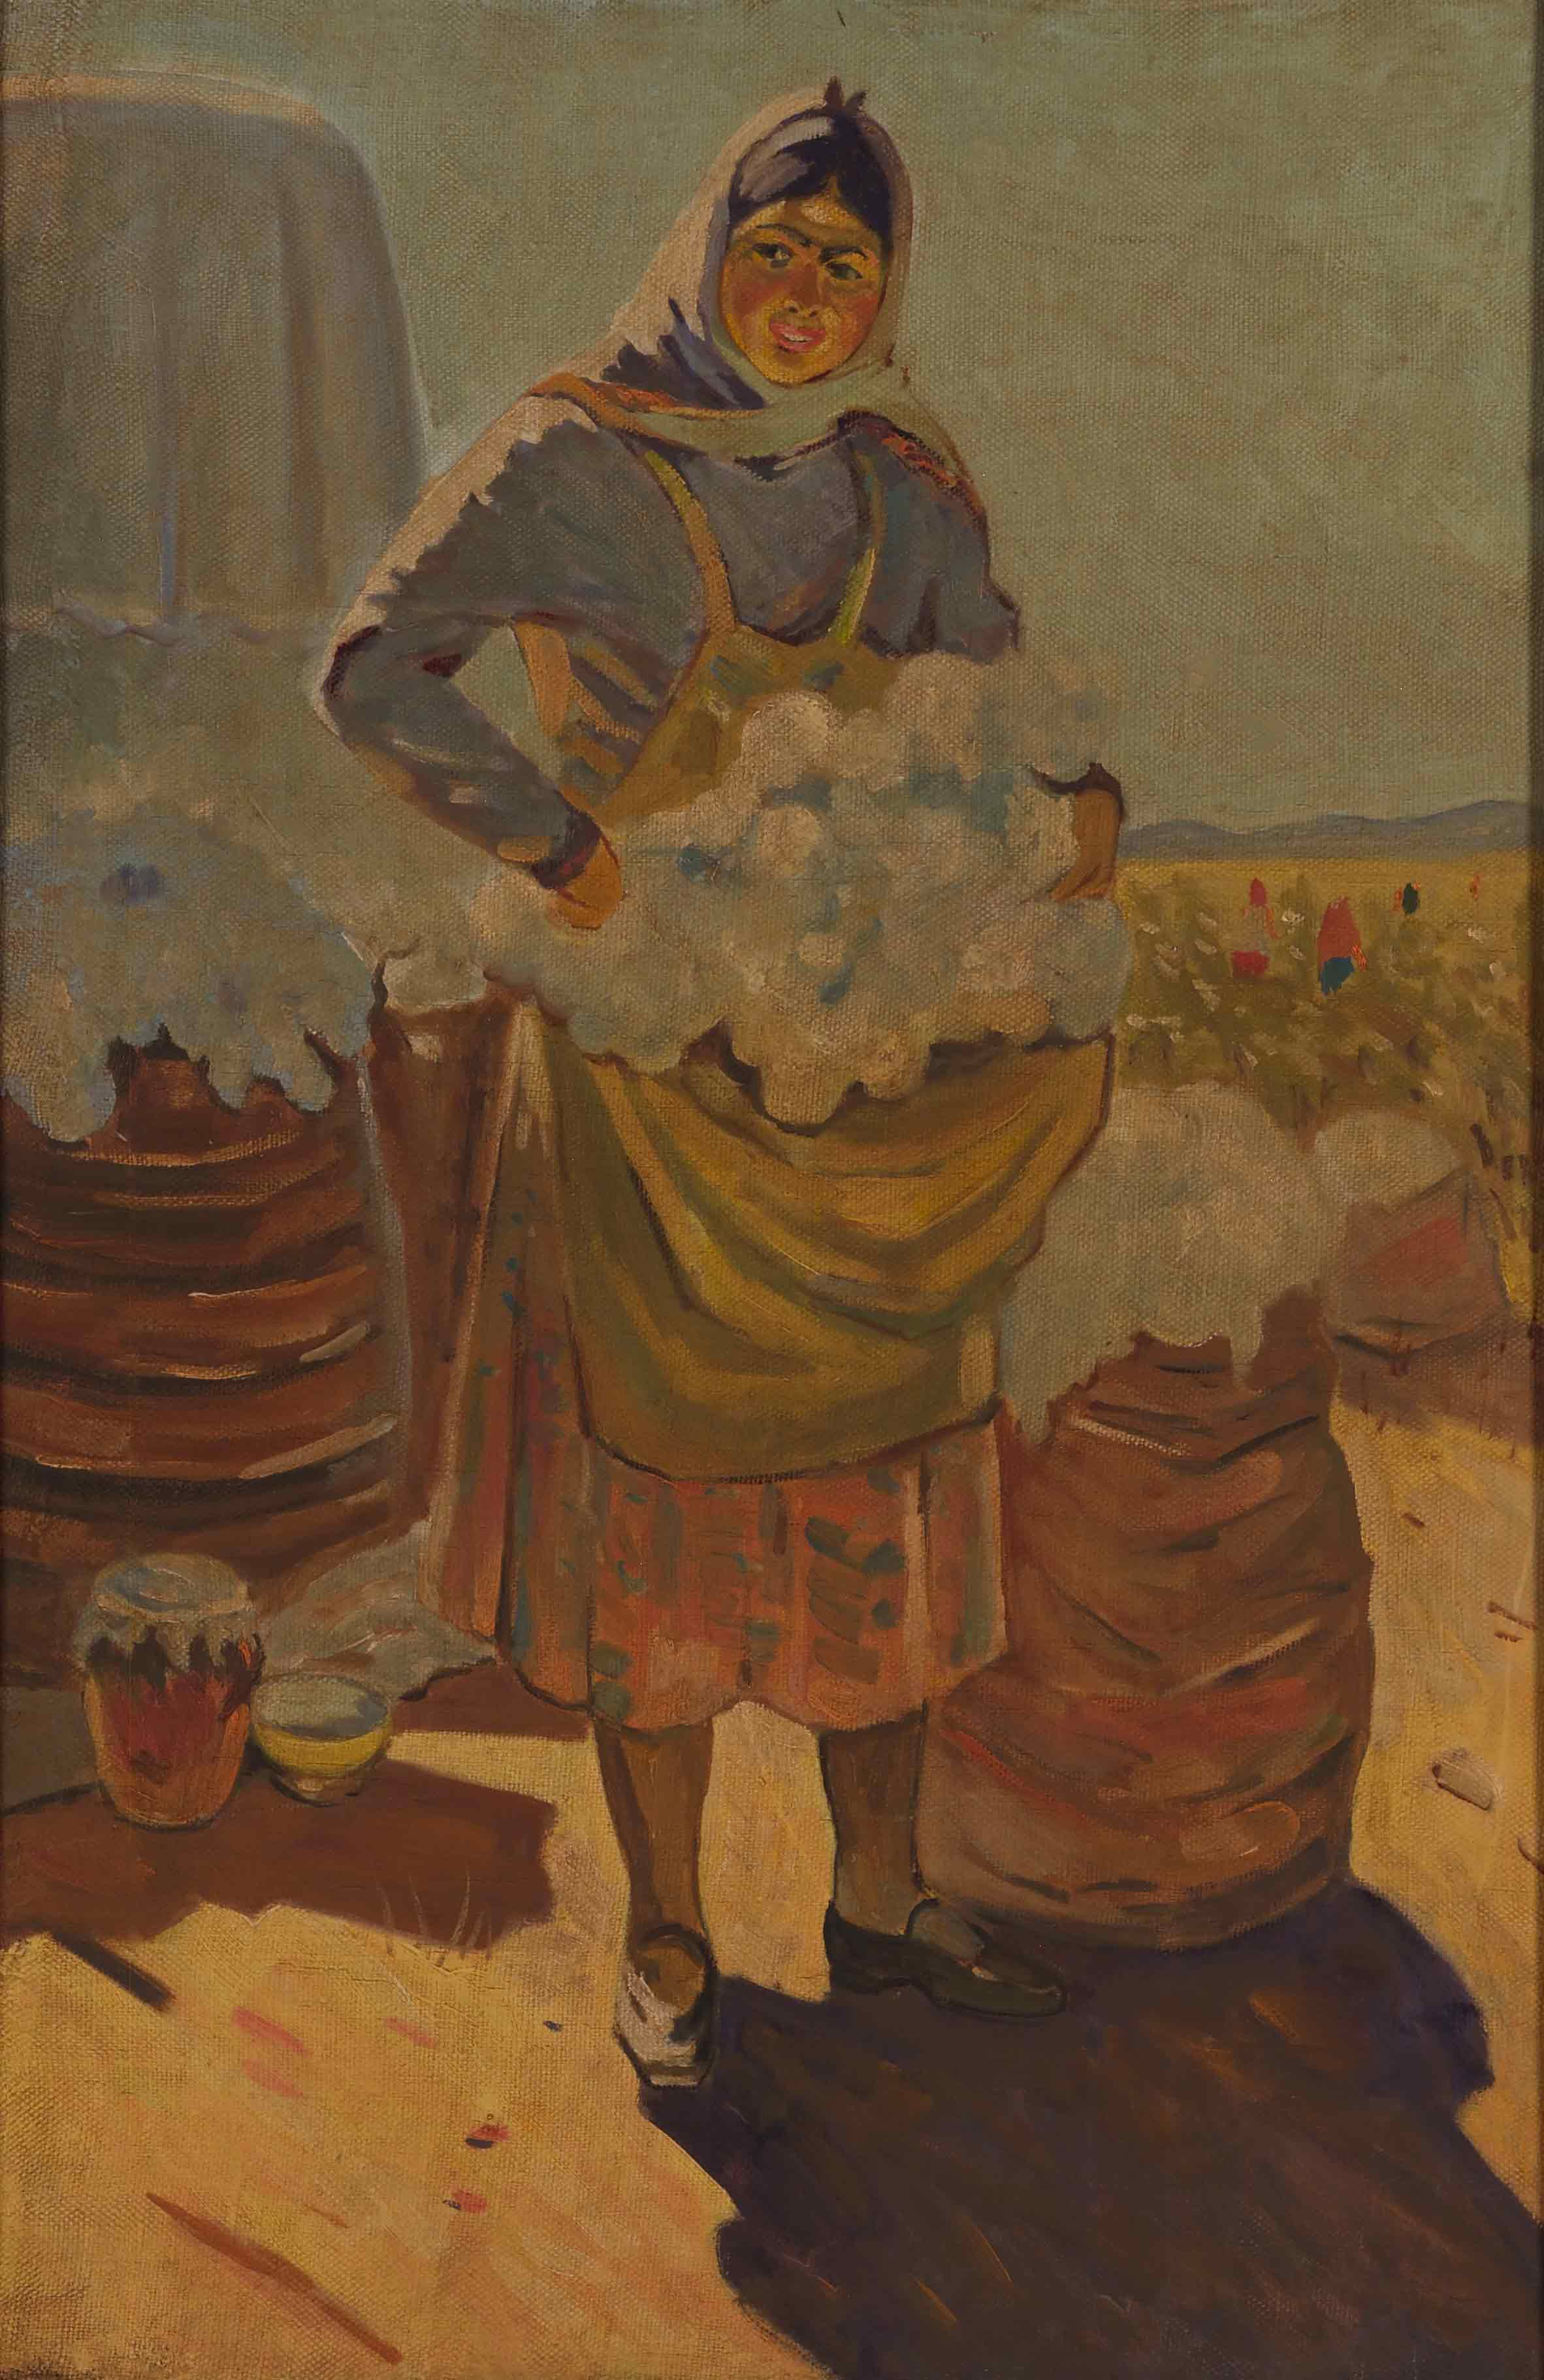 Cotton producer woman